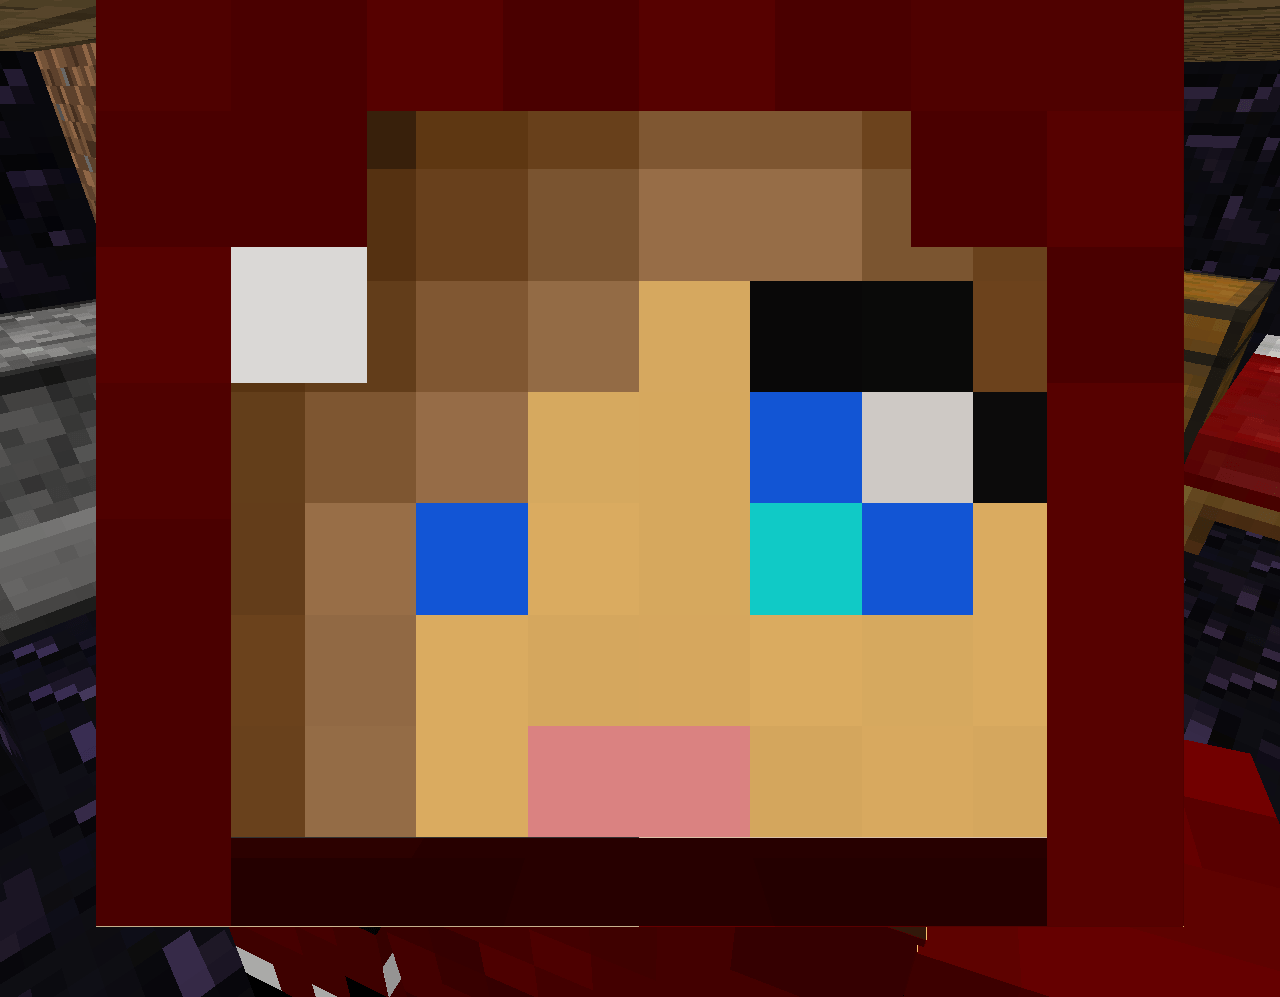 Minecraft Characters Faces Steve Minecraft Skin Headviewing Gallery For Minecraft